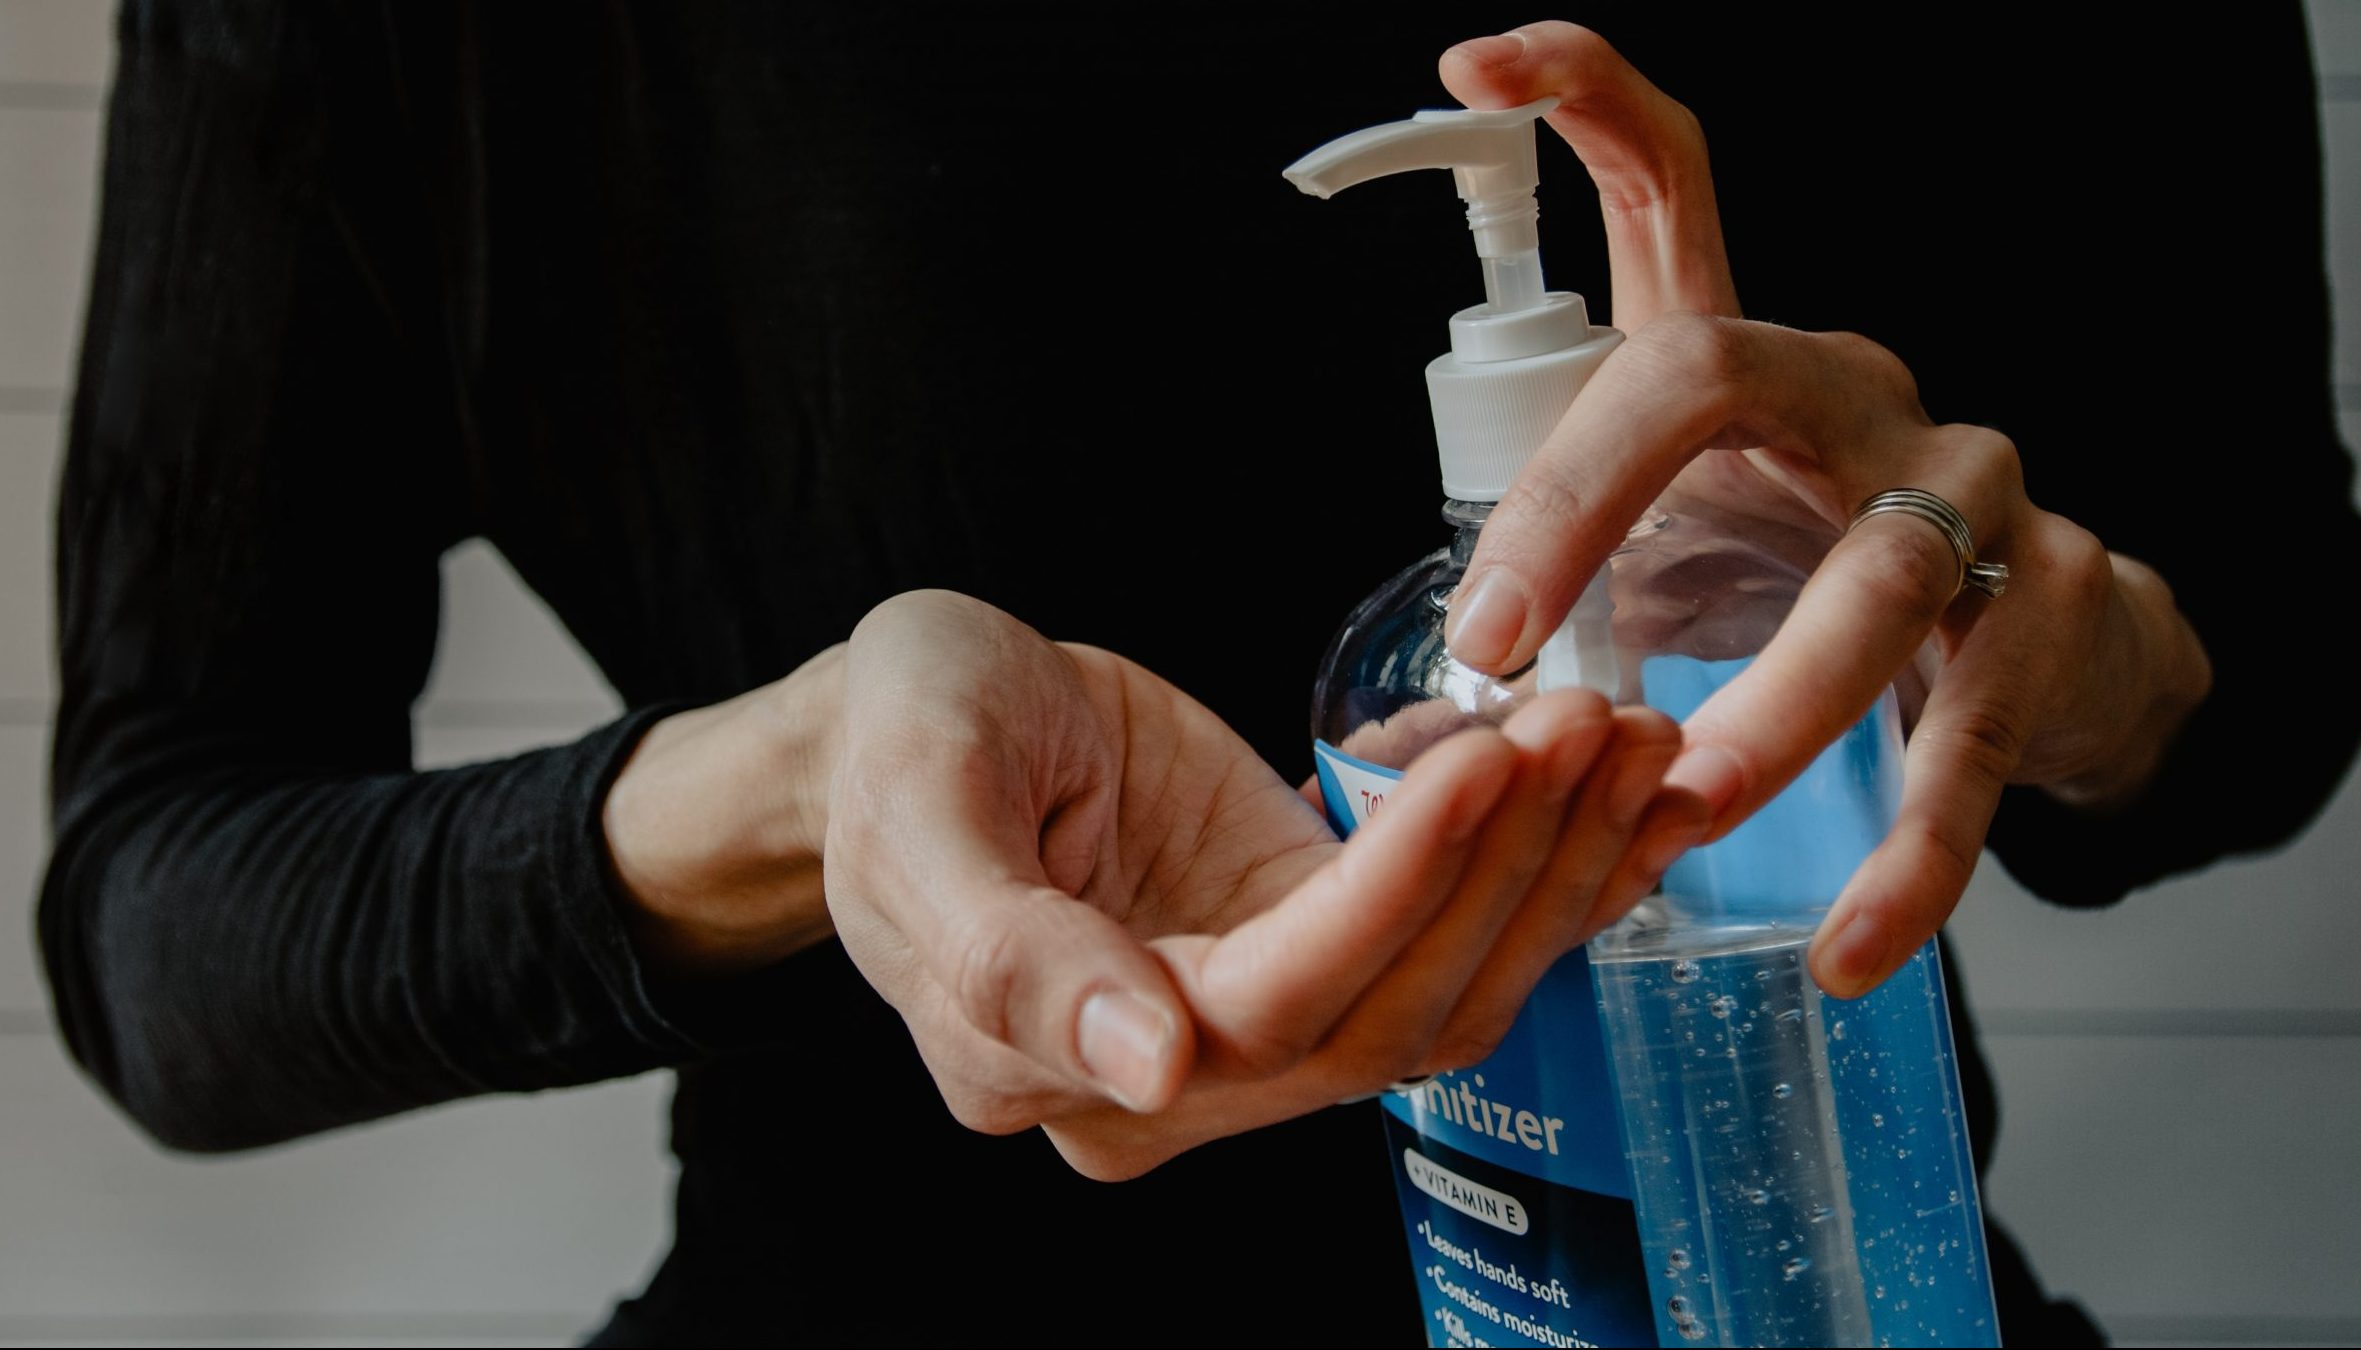 Unsplash hand gel sanitiser